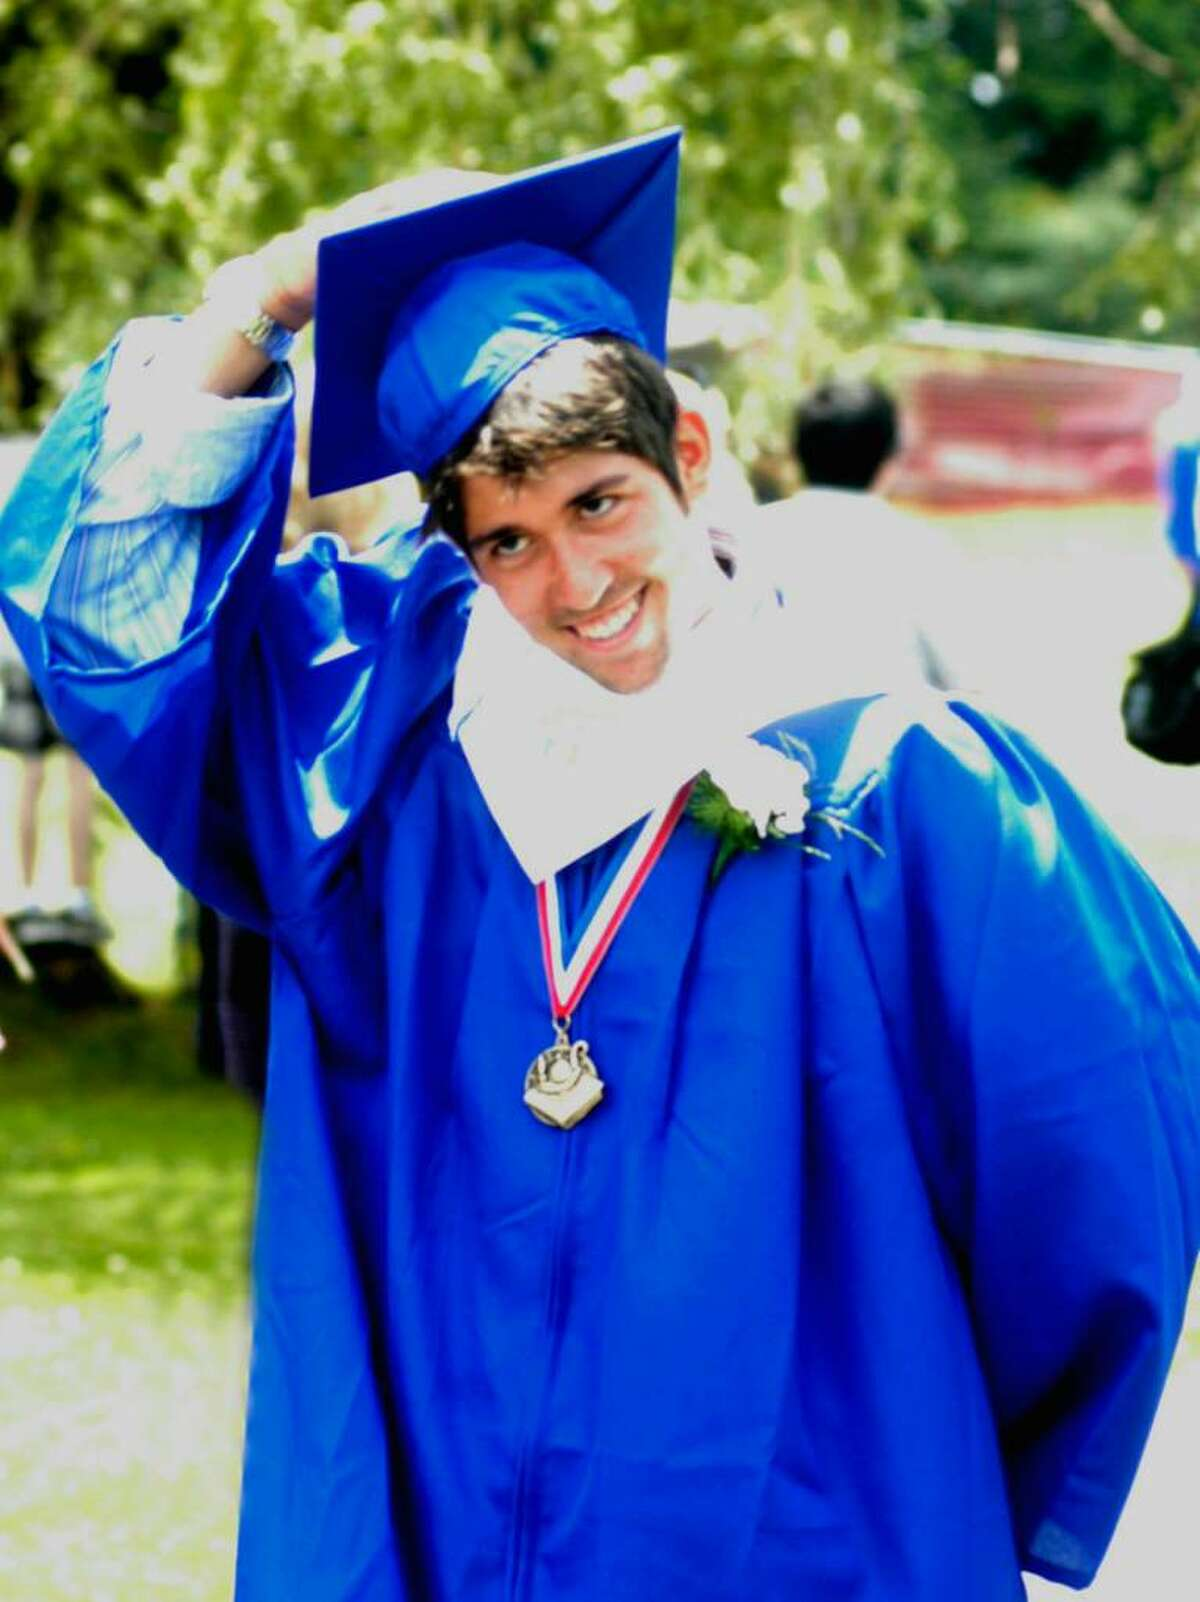 Samian Roy is already celebrant and hanging on to his hat as he marches in procession to Saturday's Shepaug Valley High School graduation on the school's rustic campus in Washington. June 26, 2010